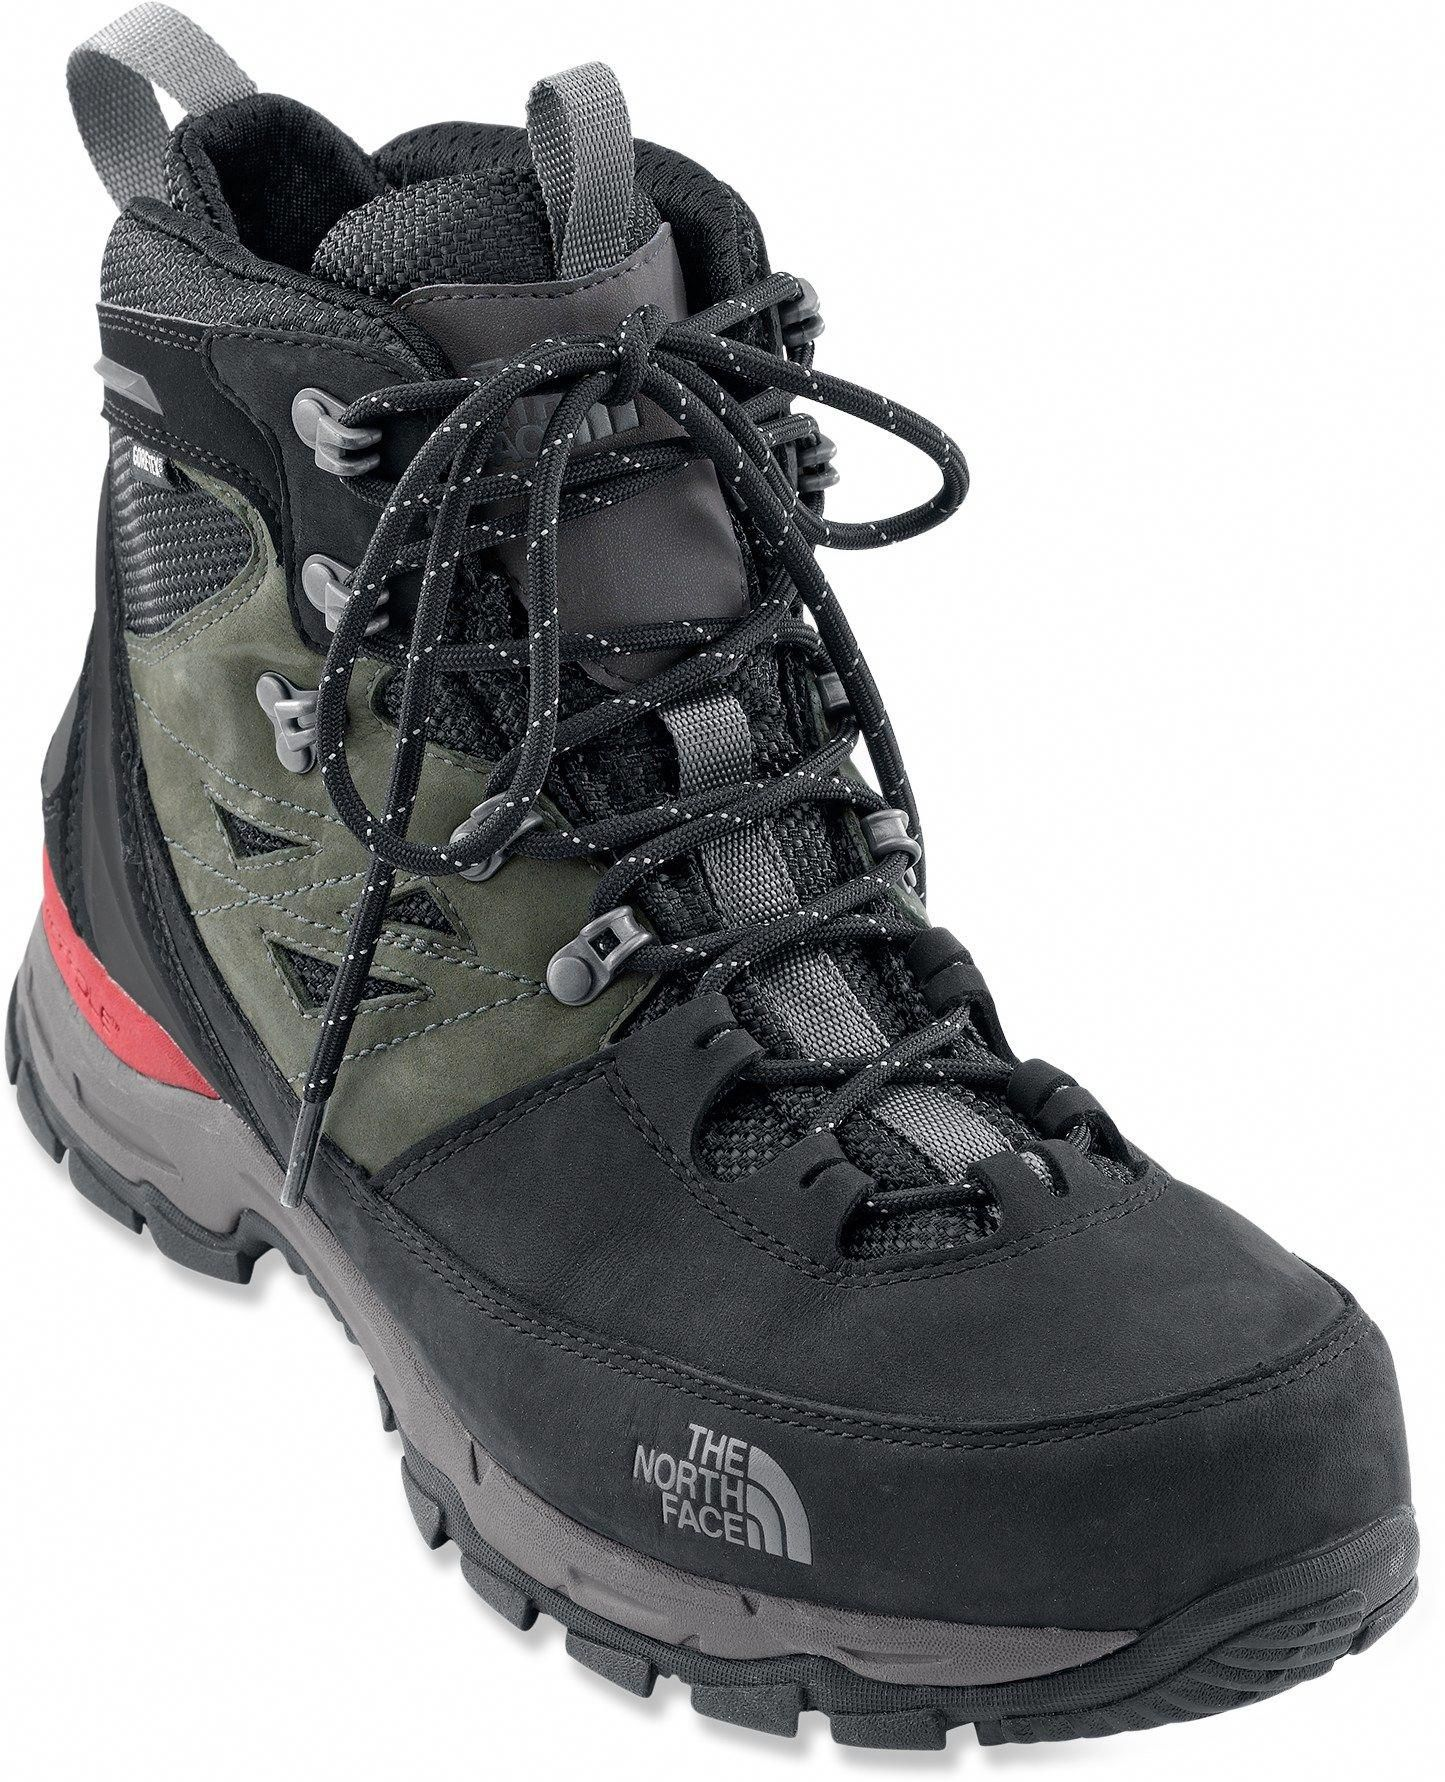 a1d10264f The North Face Verbera Hiker GTX Hiking Boots - Men's - Free ...